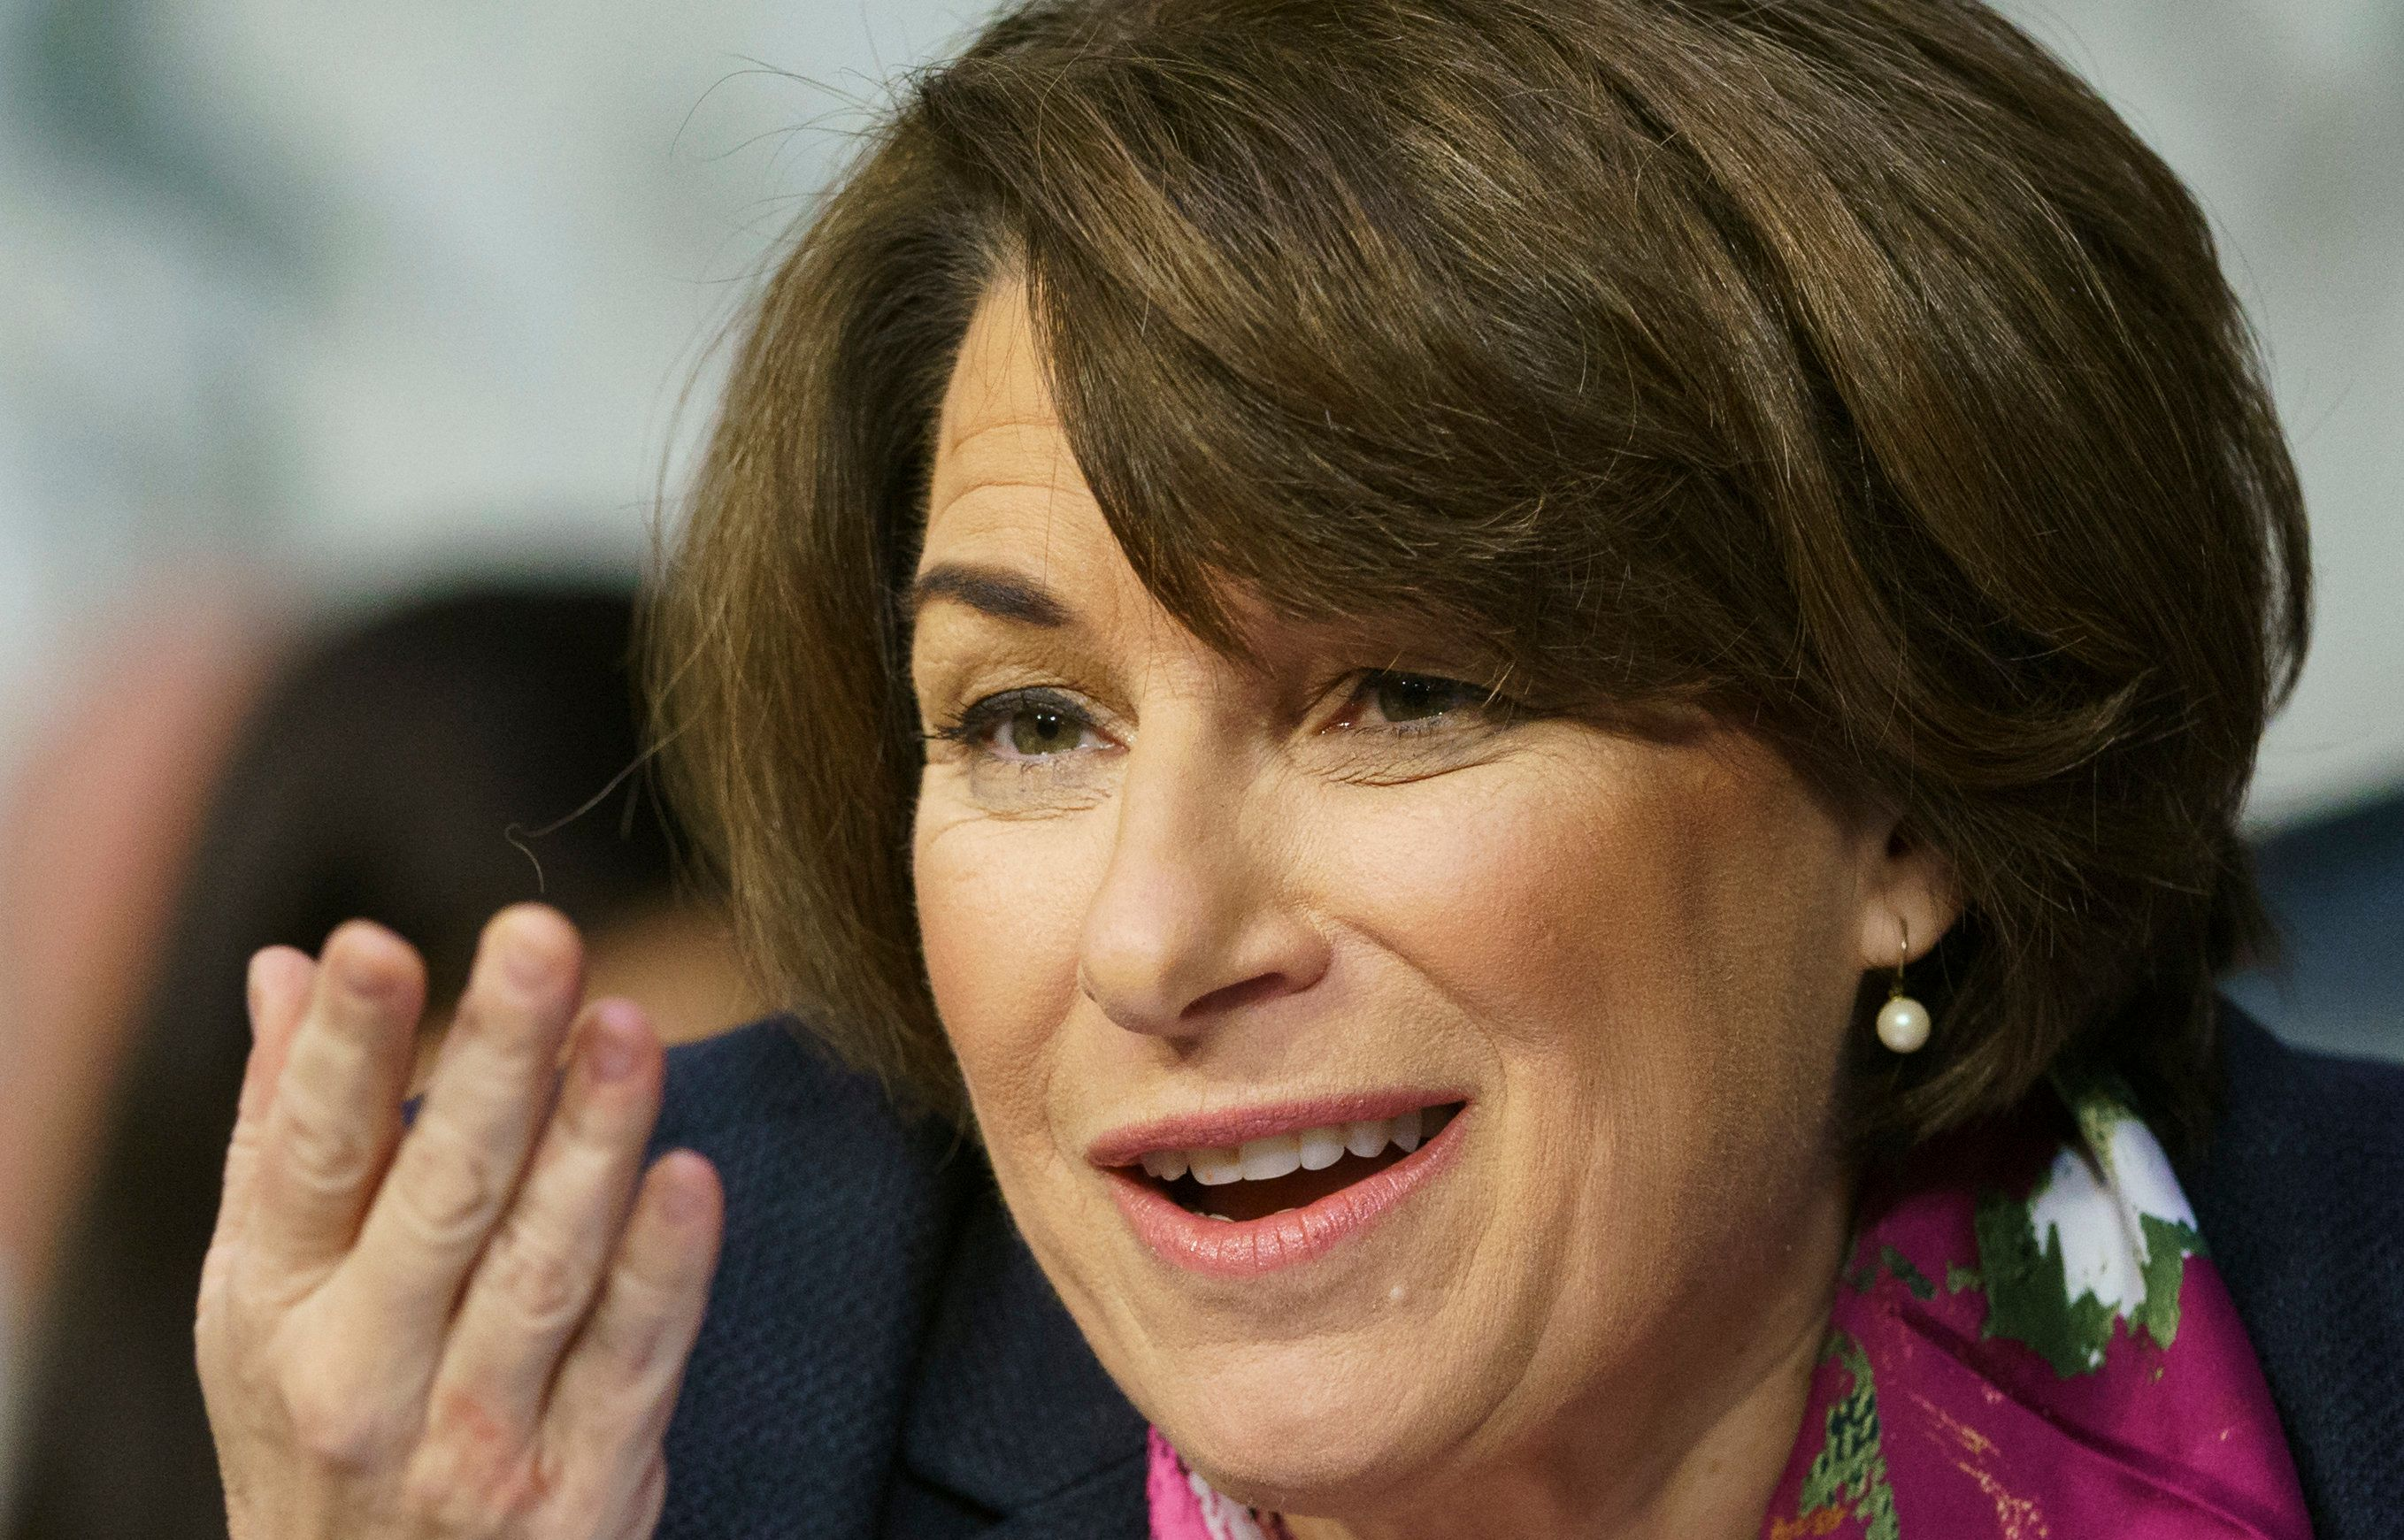 Some forms staffers of Sen. Amy Klobuchar describes the lawmaker as habitually demeaning and prone to bursts of cruelty